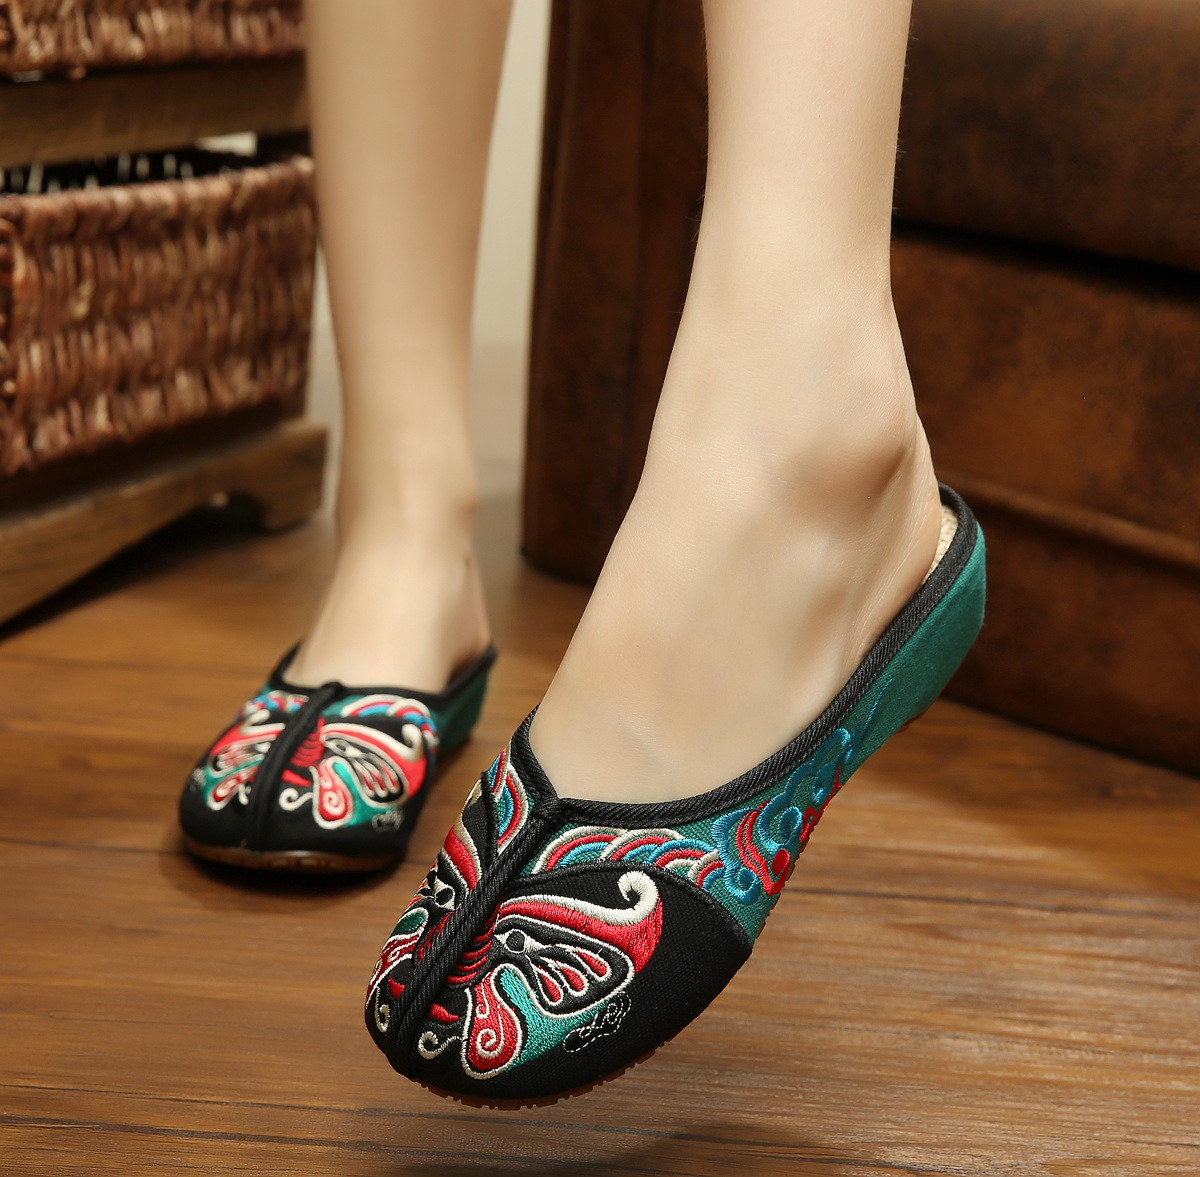 bac3c2a11 Catching 2017 Summer New Pattern Old Beijing Nation The Wind Embroidered  Cotton Slope Slipper Chinese Style Sandals-in Women s Flats from Shoes on  ...